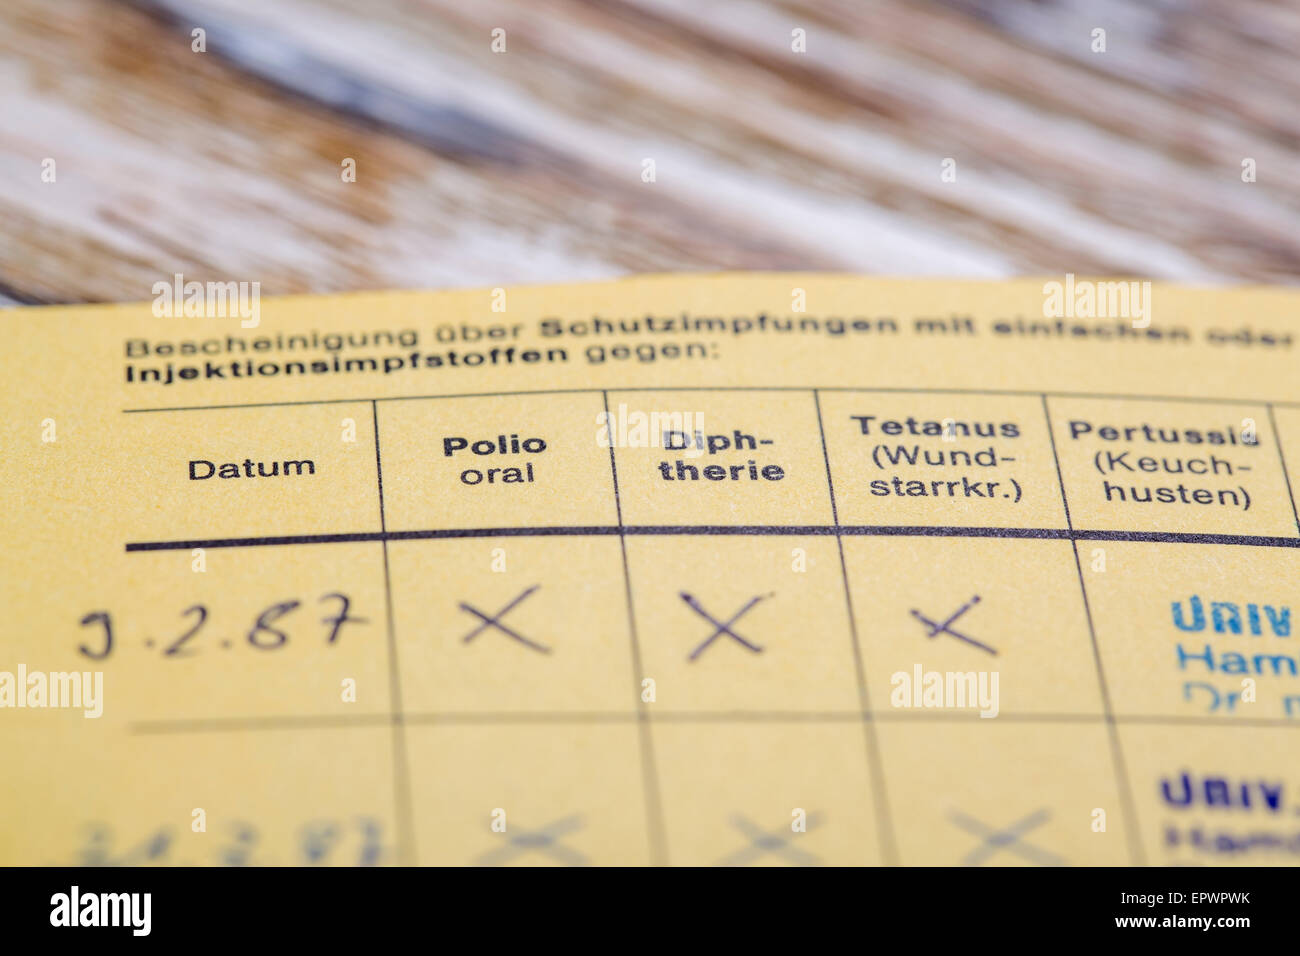 HAMBURG, GERMANY - APRIL 12 2015: German version of the International Certificate of vaccination for Polio, Diphtheria, - Stock Image